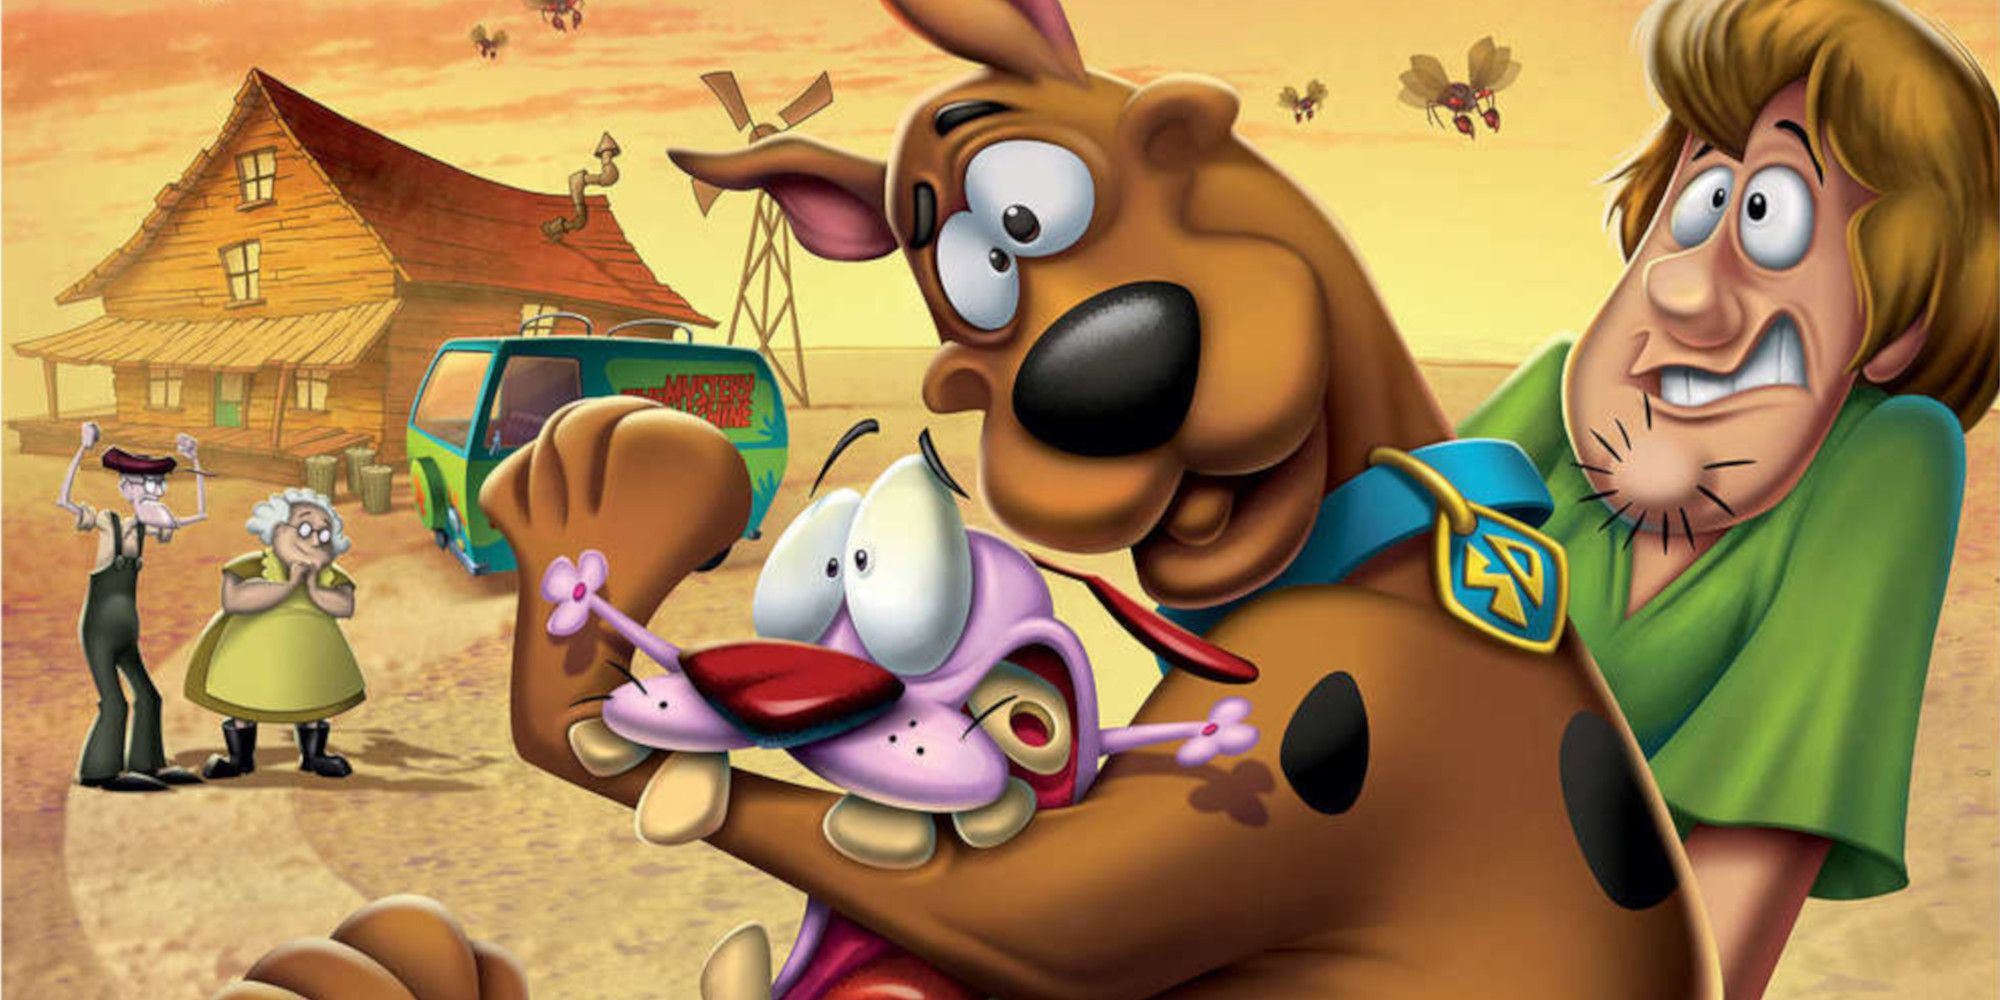 Scooby-Doo and Courage the Cowardly Dog Team Up in Cartoon Network Film